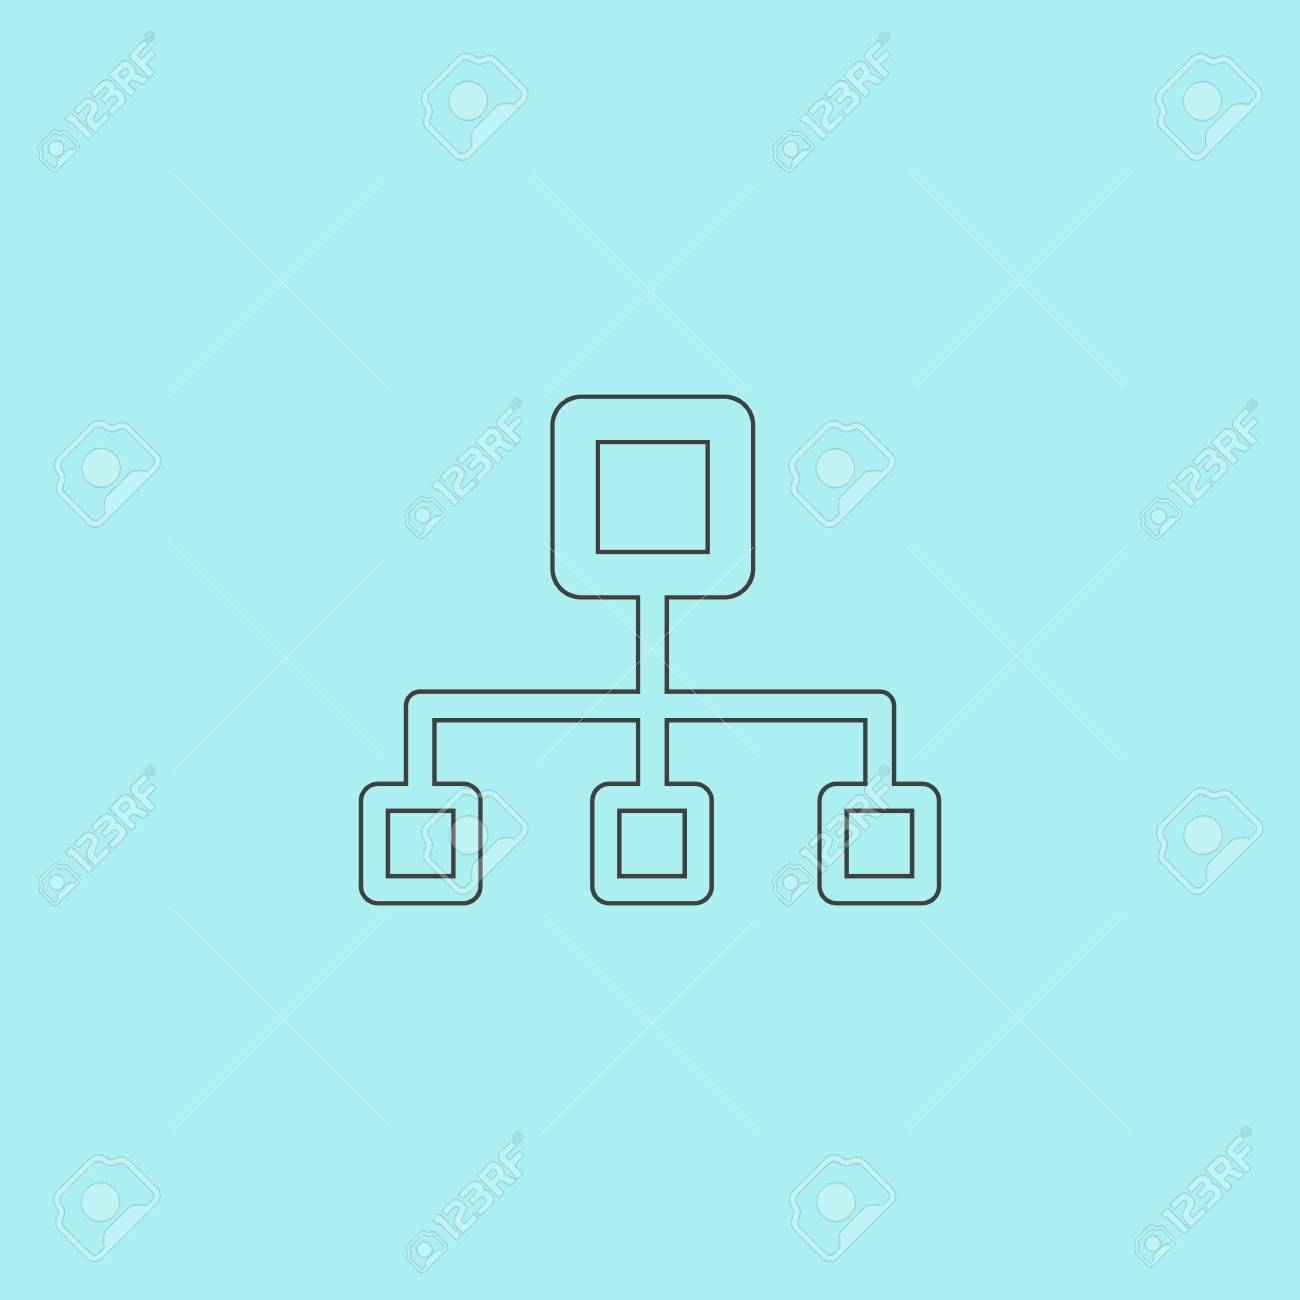 hight resolution of network block diagram simple outline flat vector icon isolated on blue background stock vector